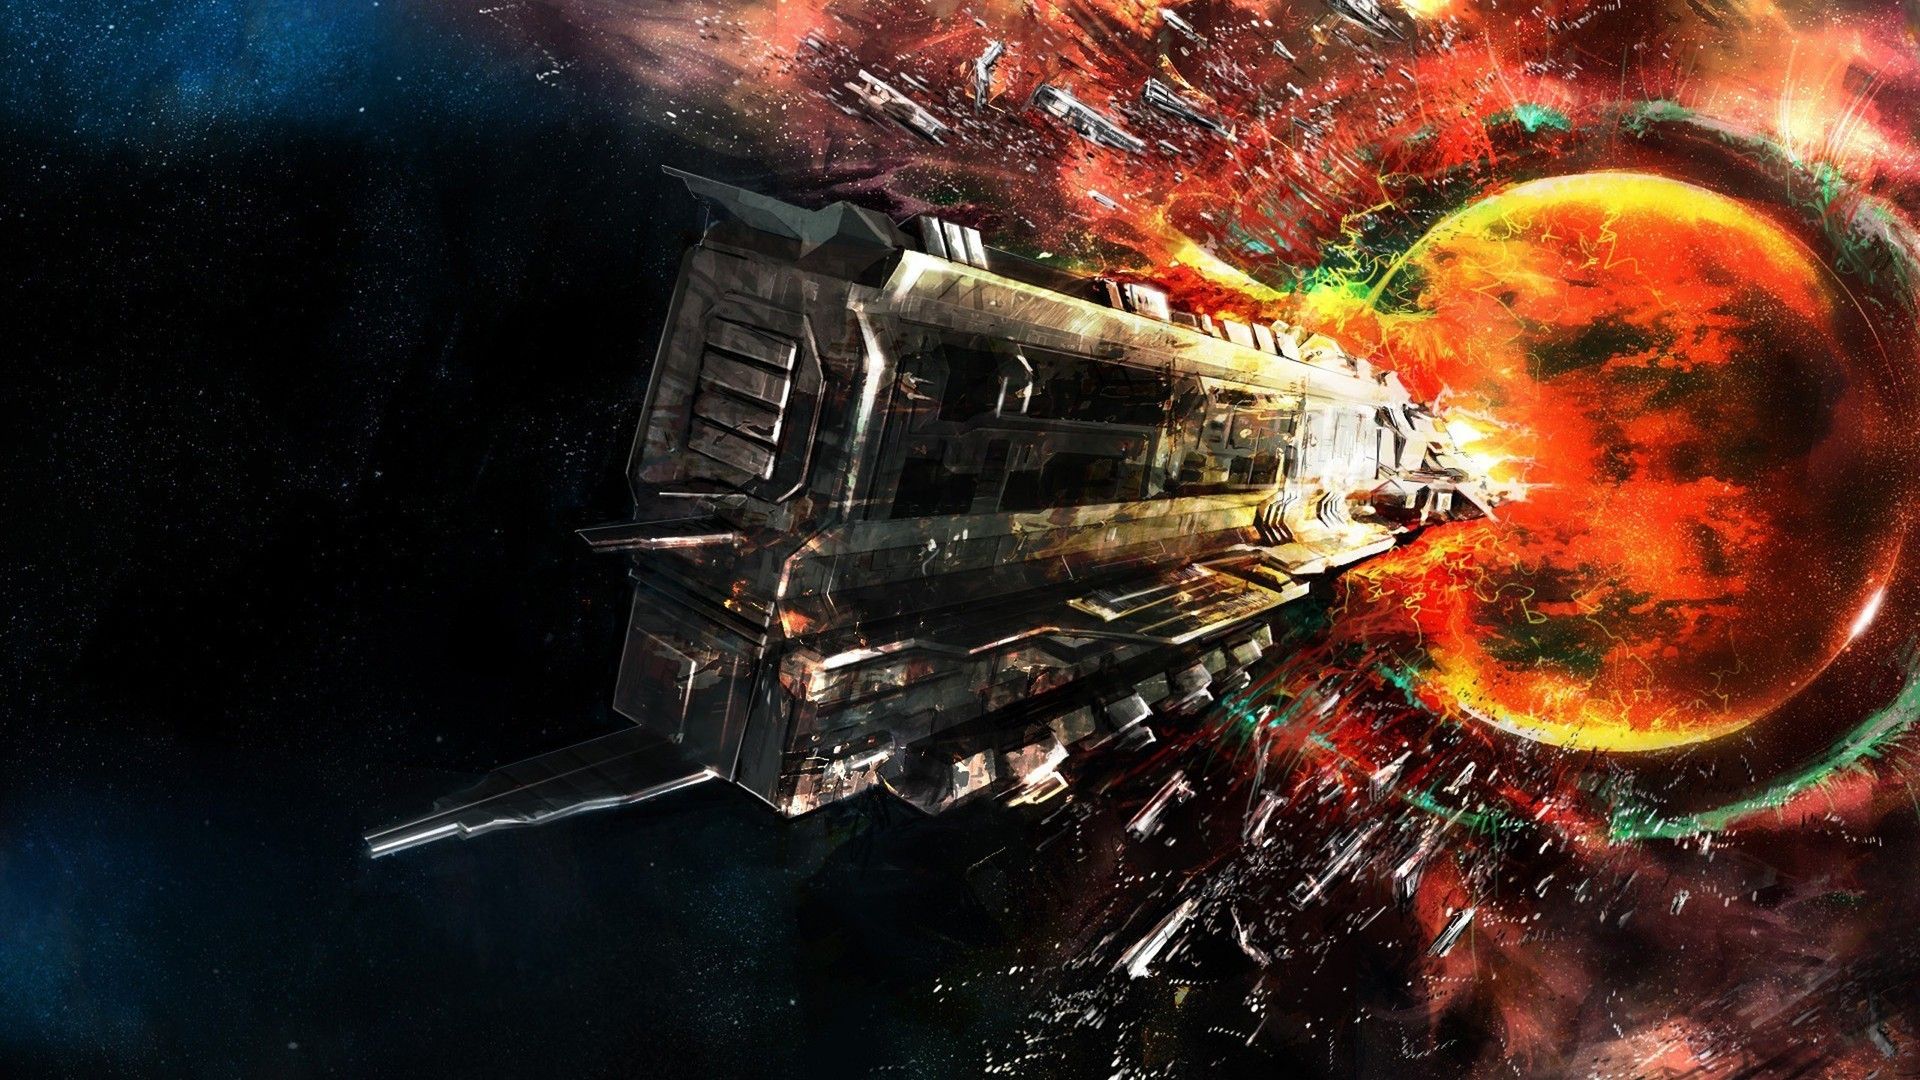 Iphone 5 Star Wars Wallpaper Outer Space Eve Online Fantasy Art Rokh Wallpaper